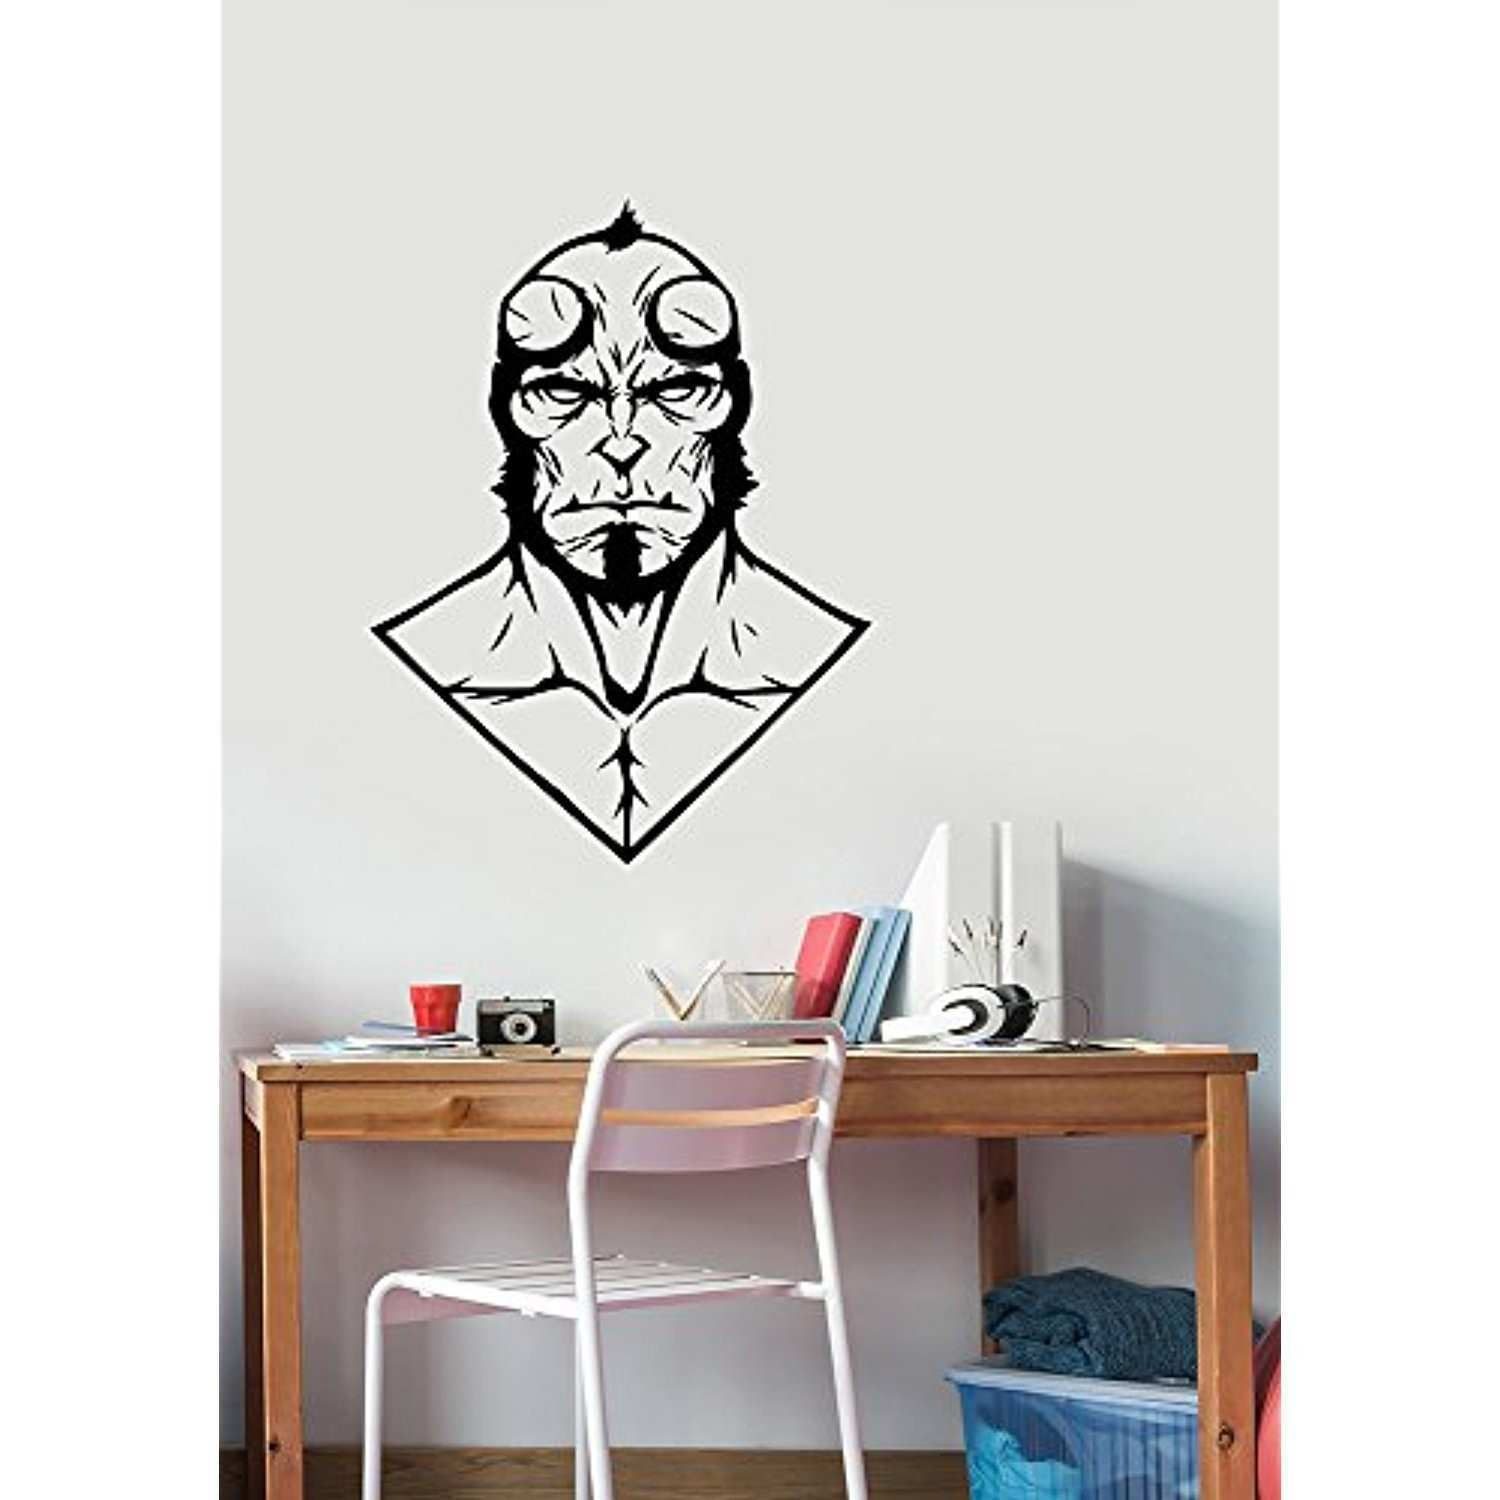 Awesome Monkey Decals for Walls